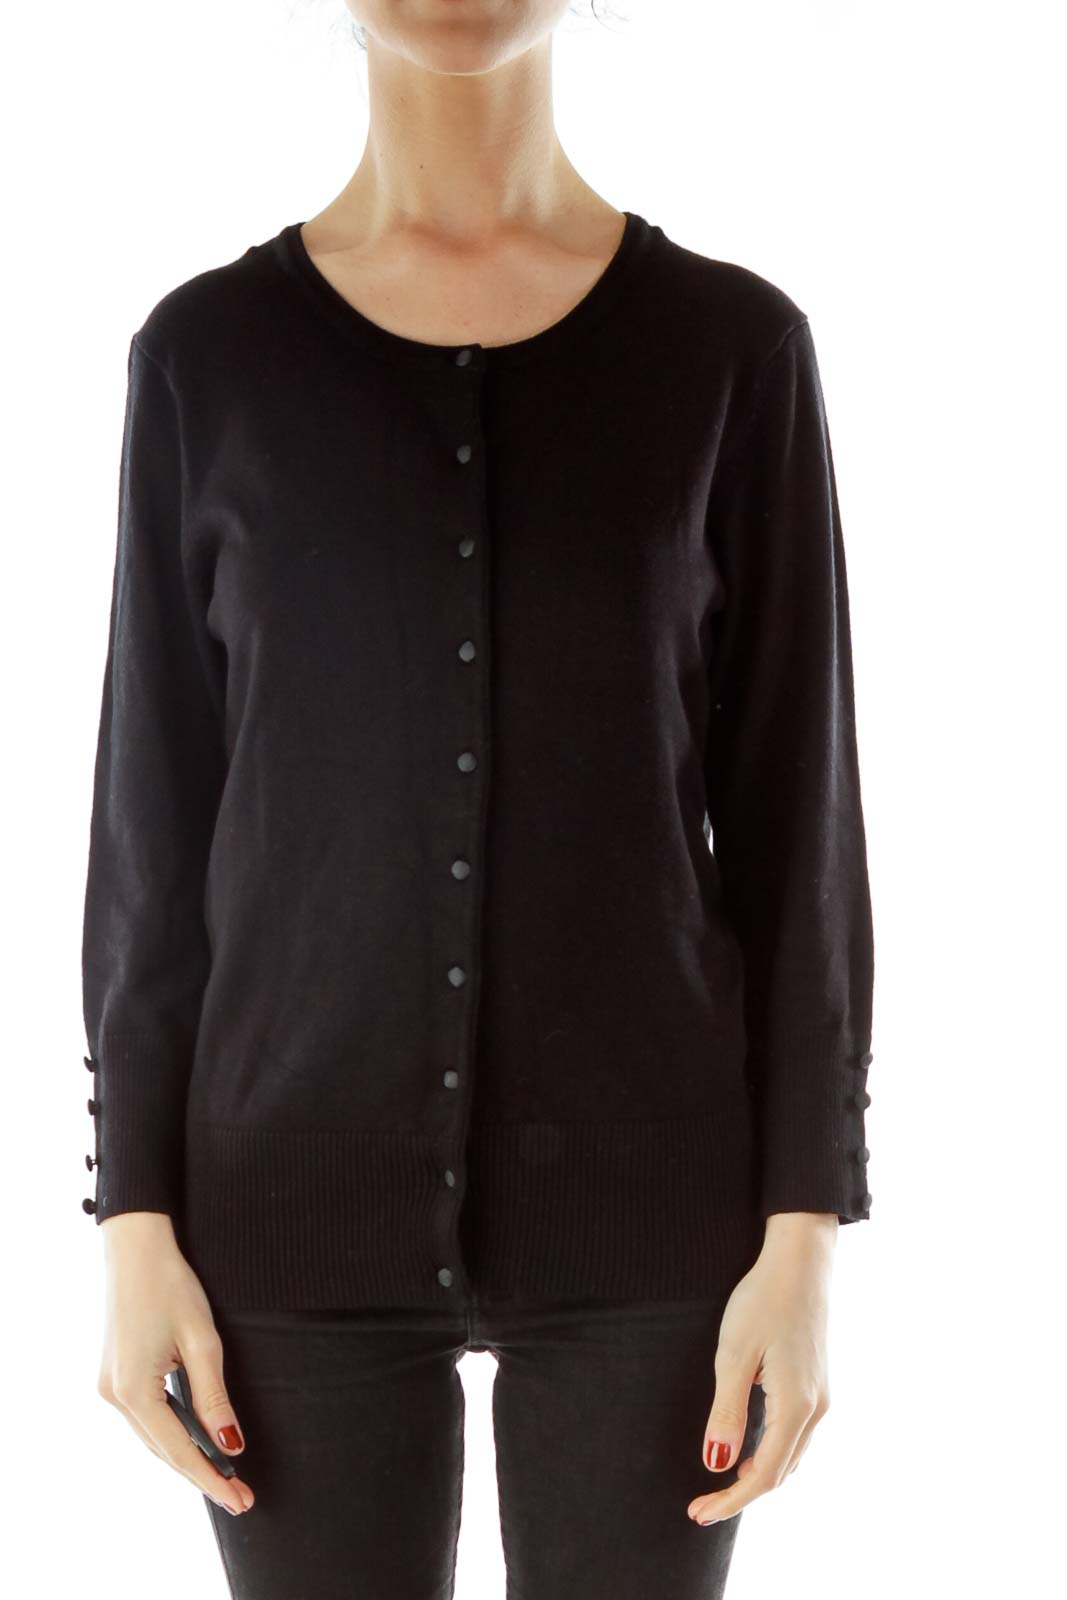 Black Buttoned Cardigan Front